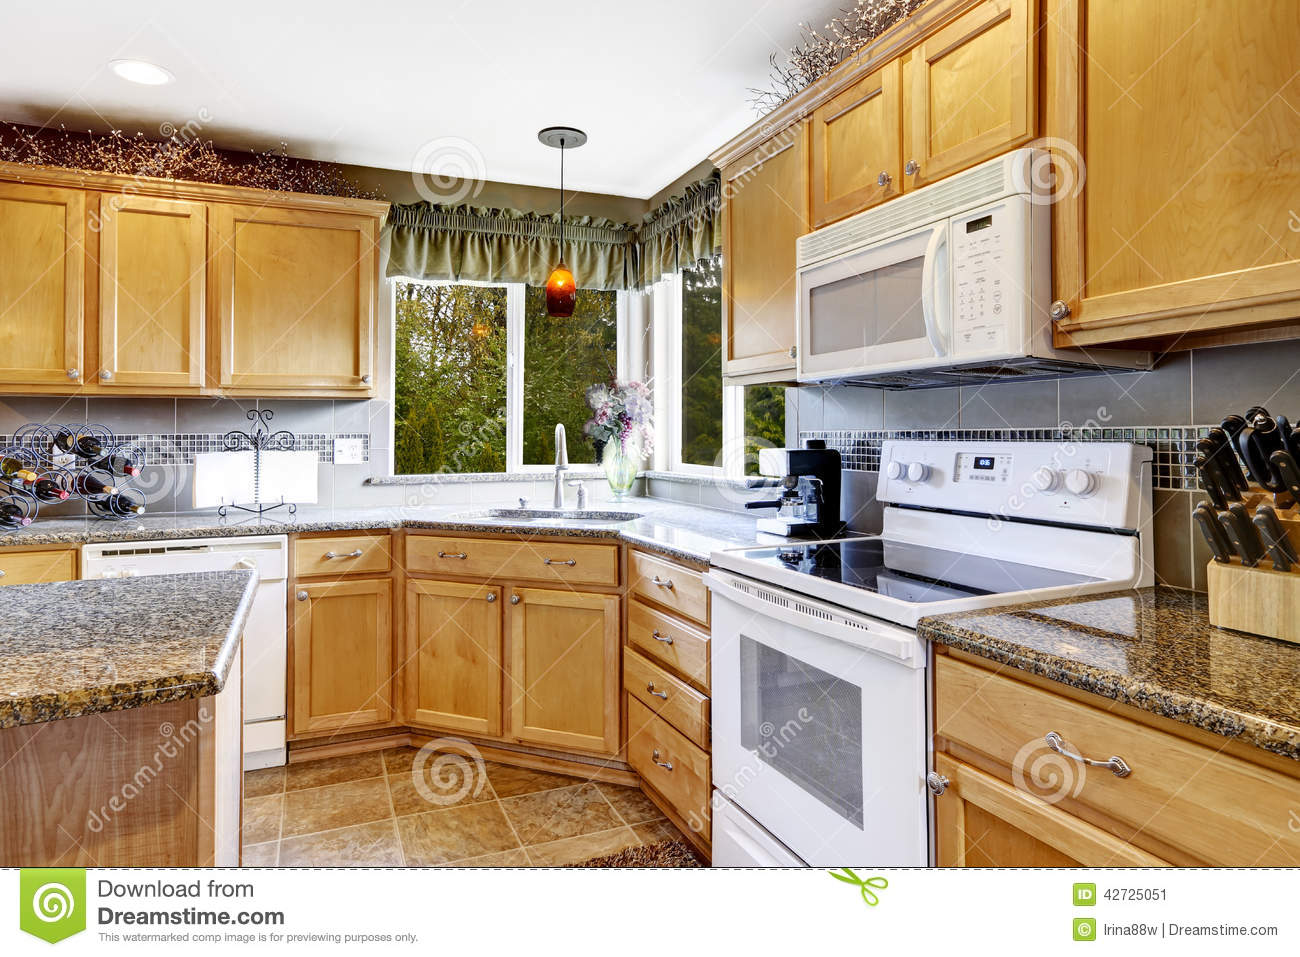 Bright kitchen room interior with white appliances stock for Kitchen design with white appliances